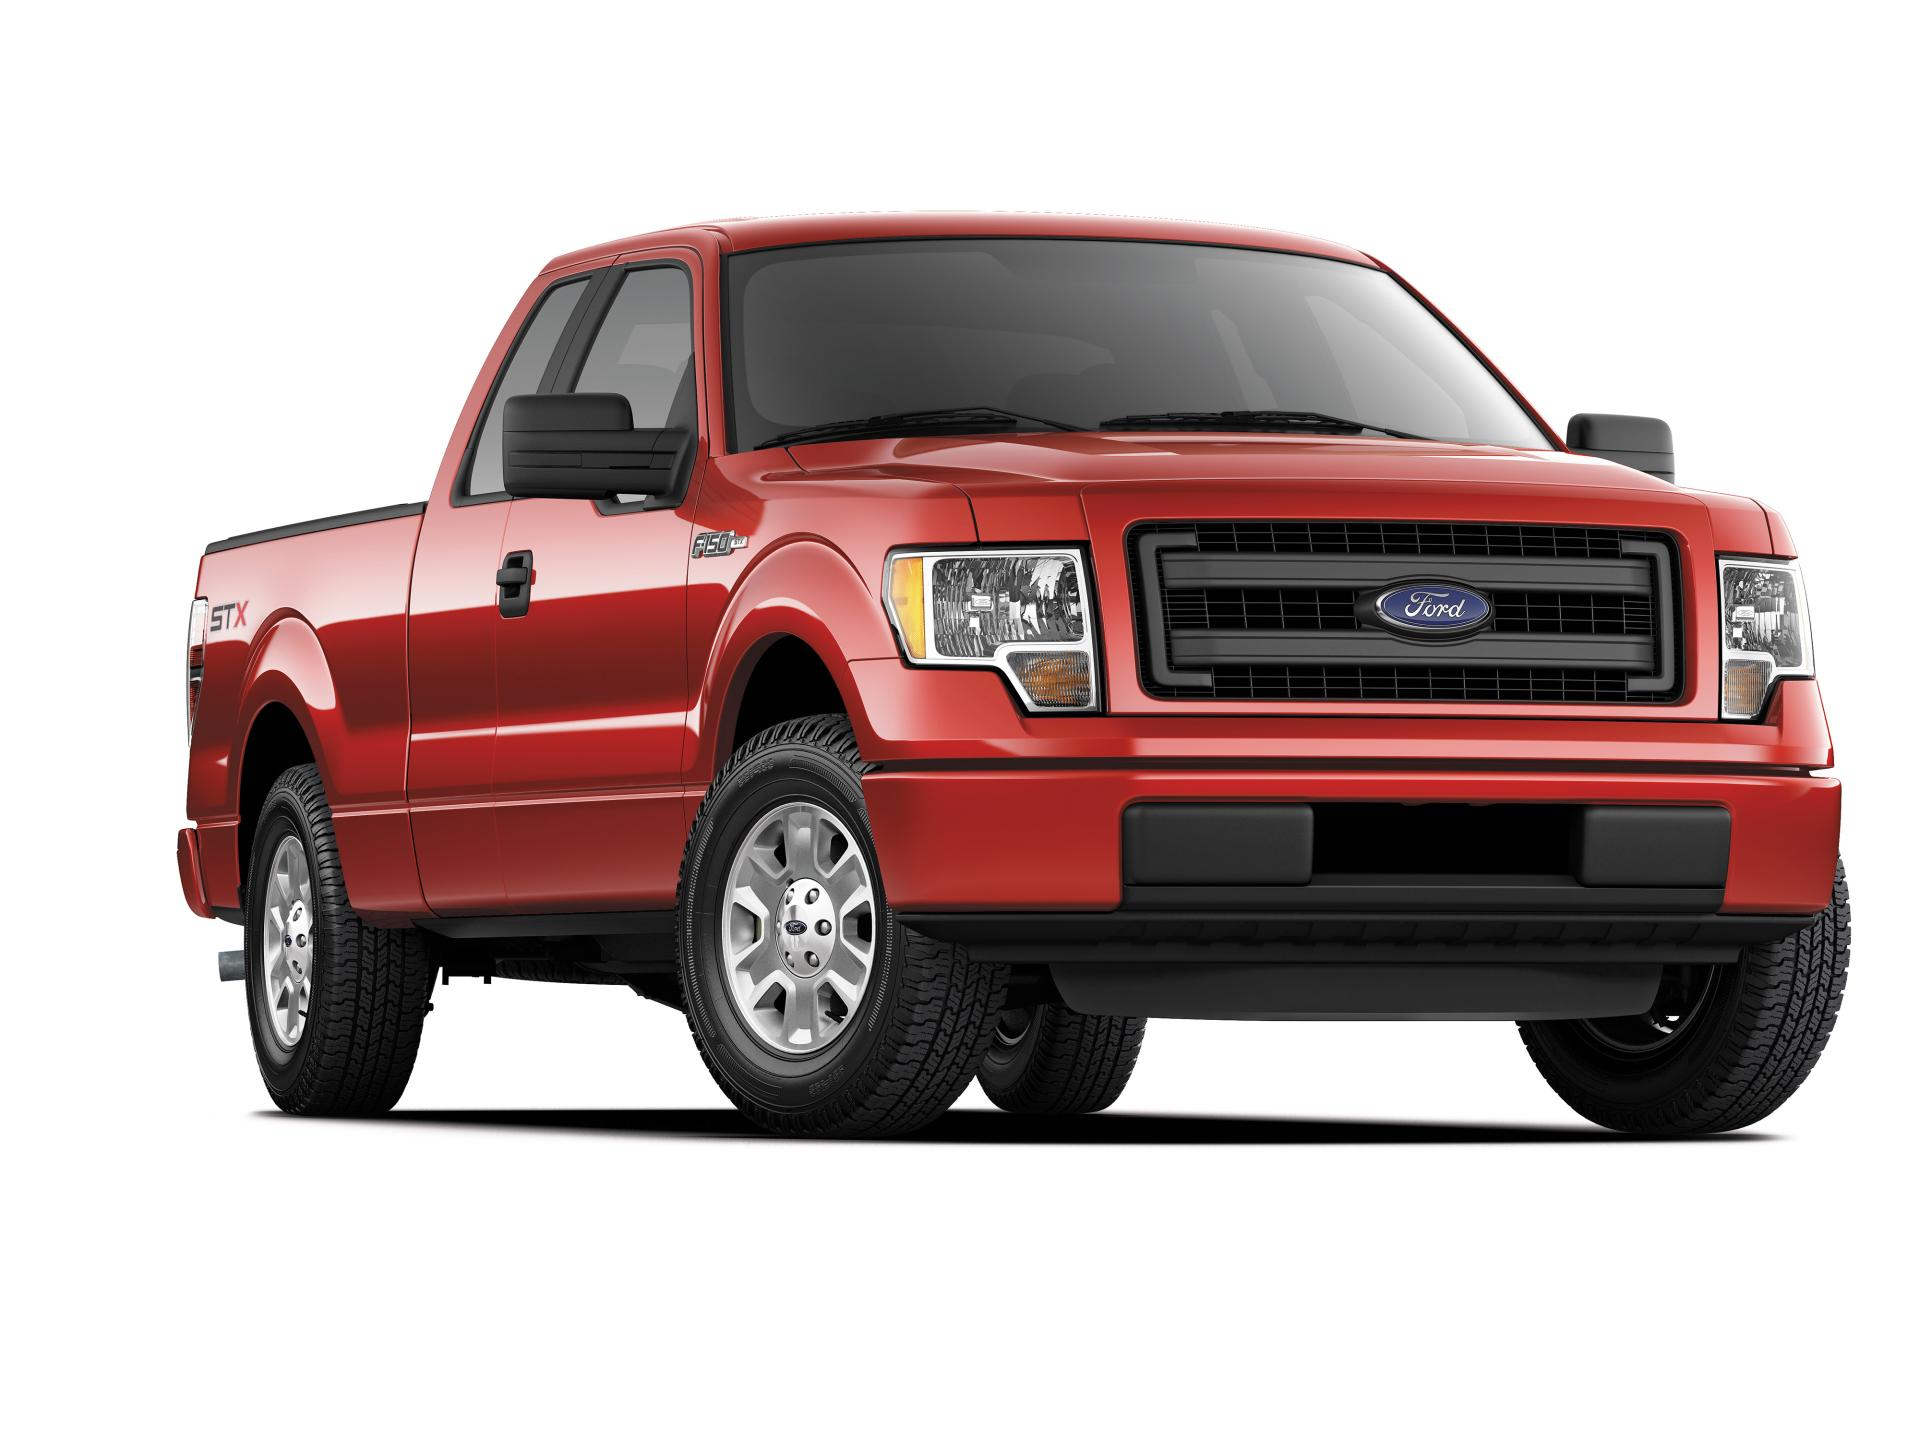 2014 ford f 150 stx news and information. Black Bedroom Furniture Sets. Home Design Ideas